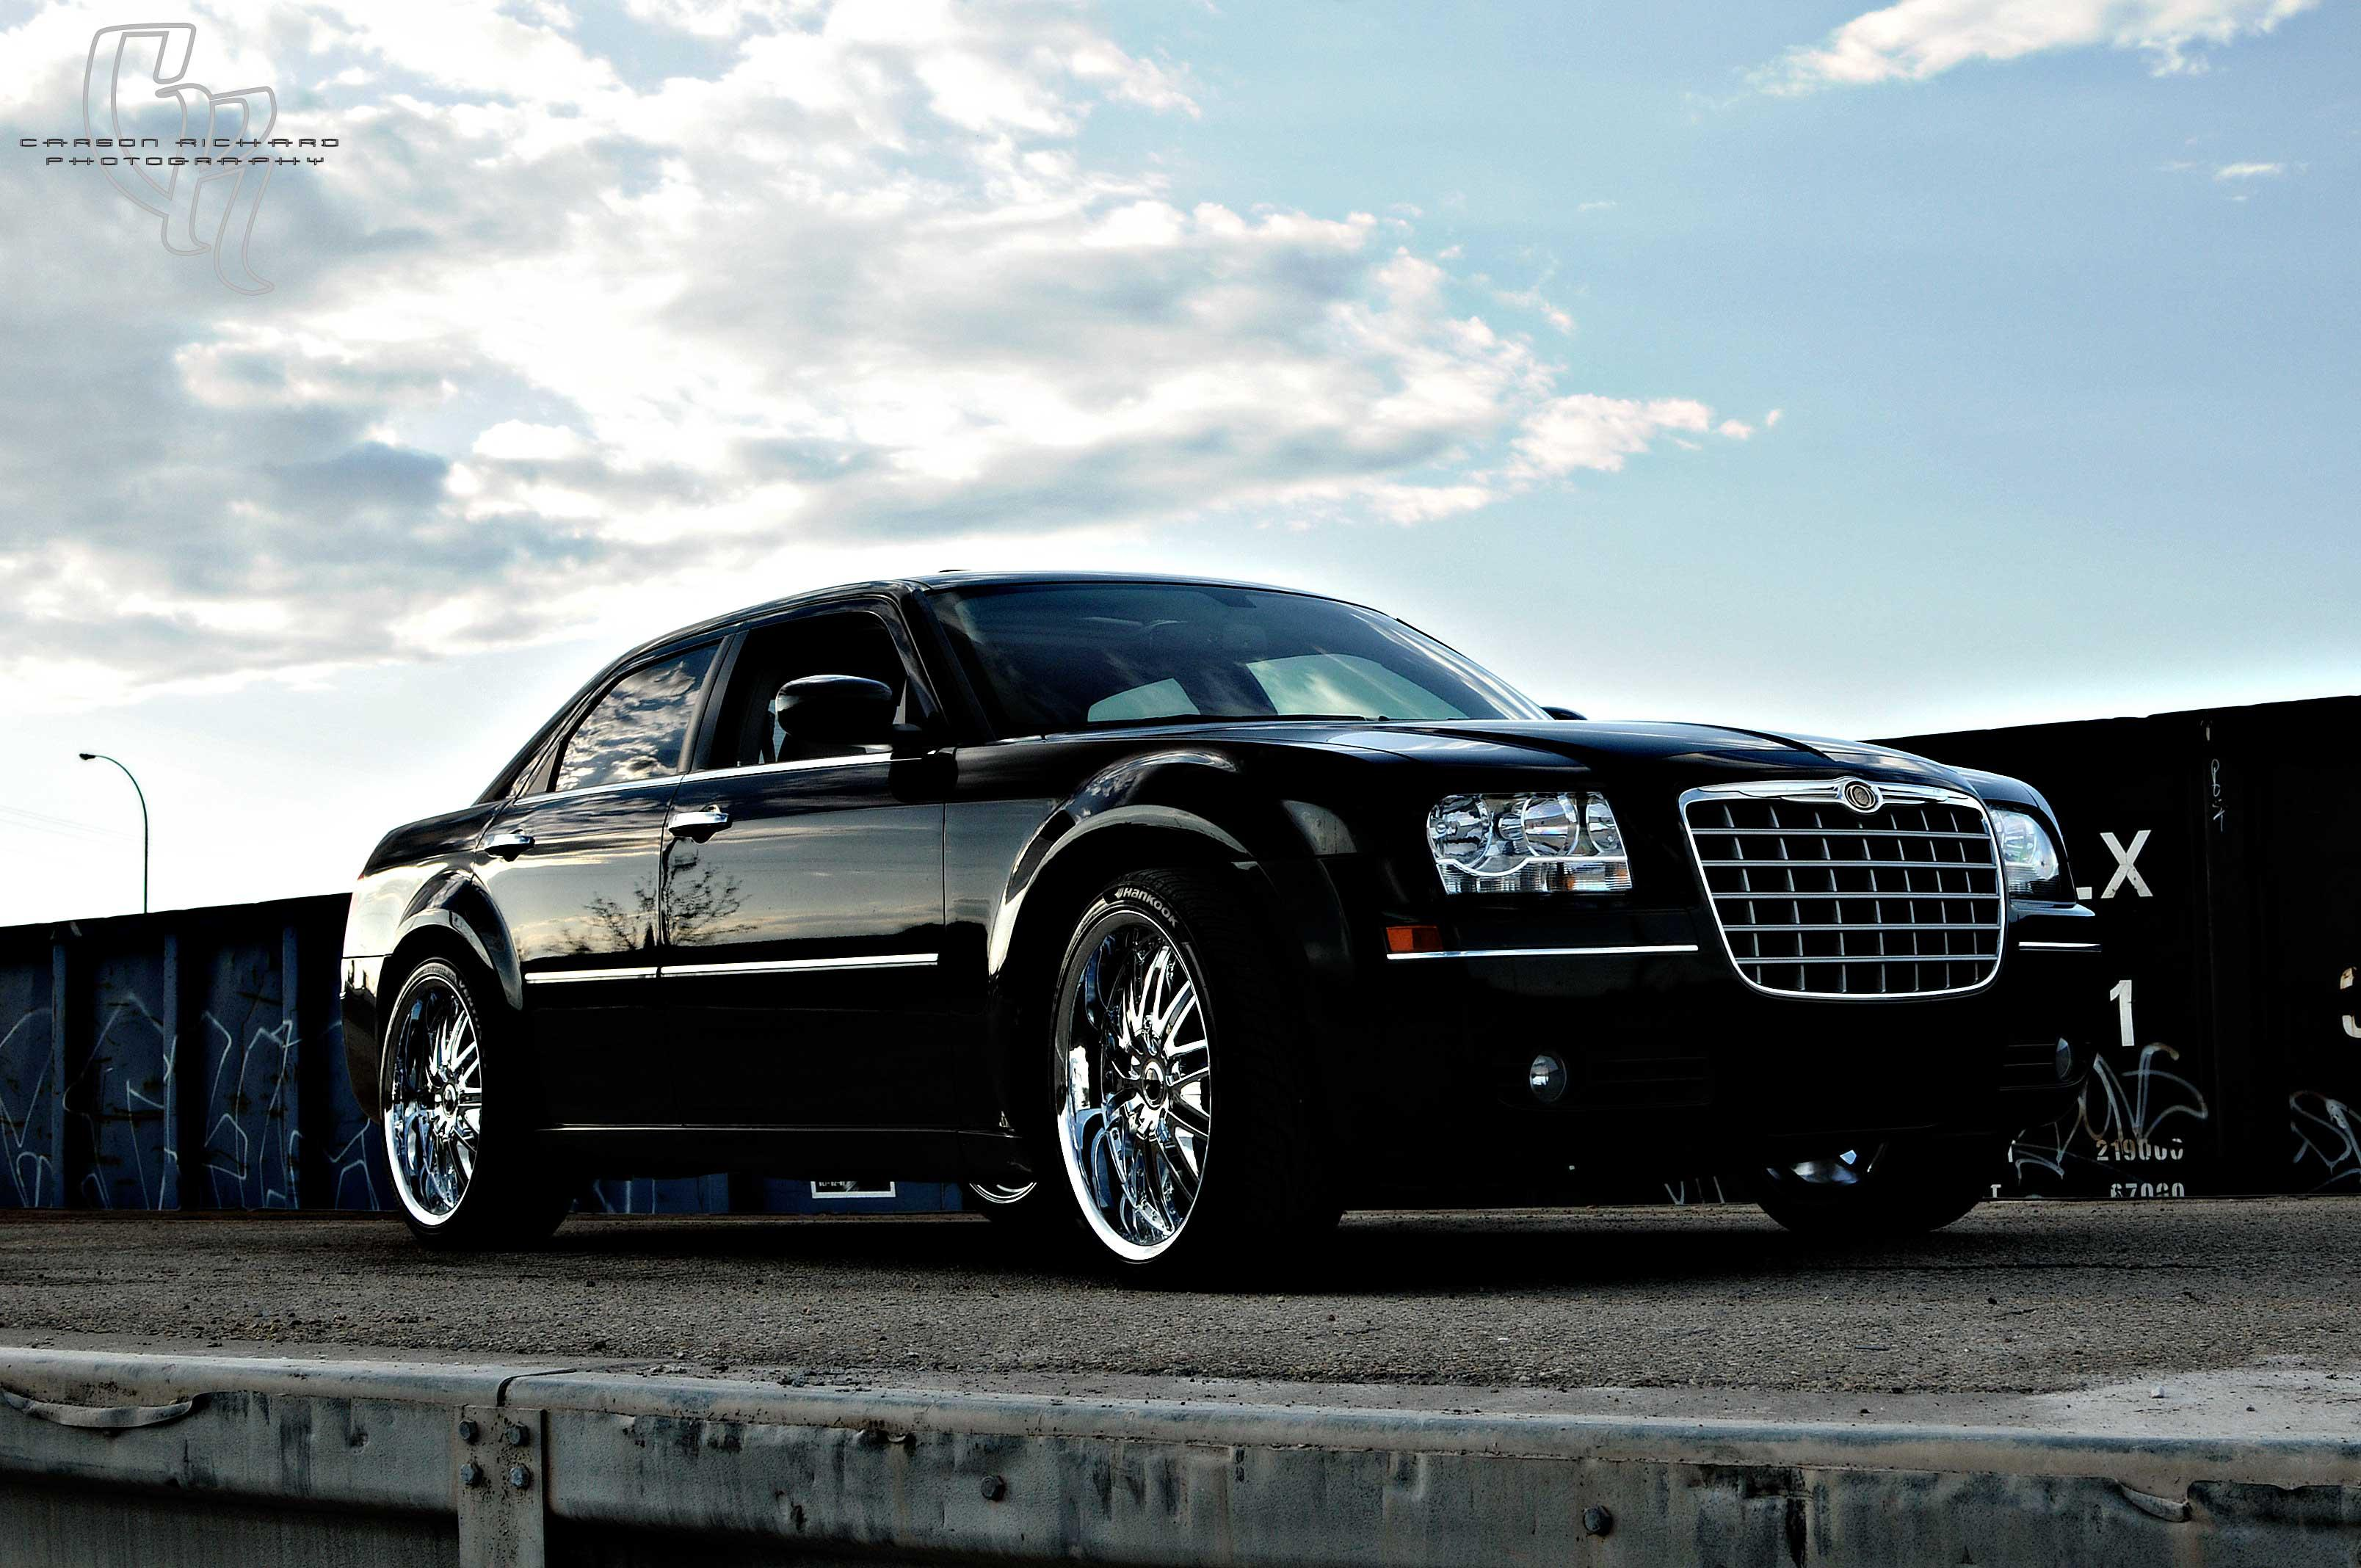 Fueld designs 2007 chrysler 300 specs photos - 2007 chrysler 300 custom interior ...